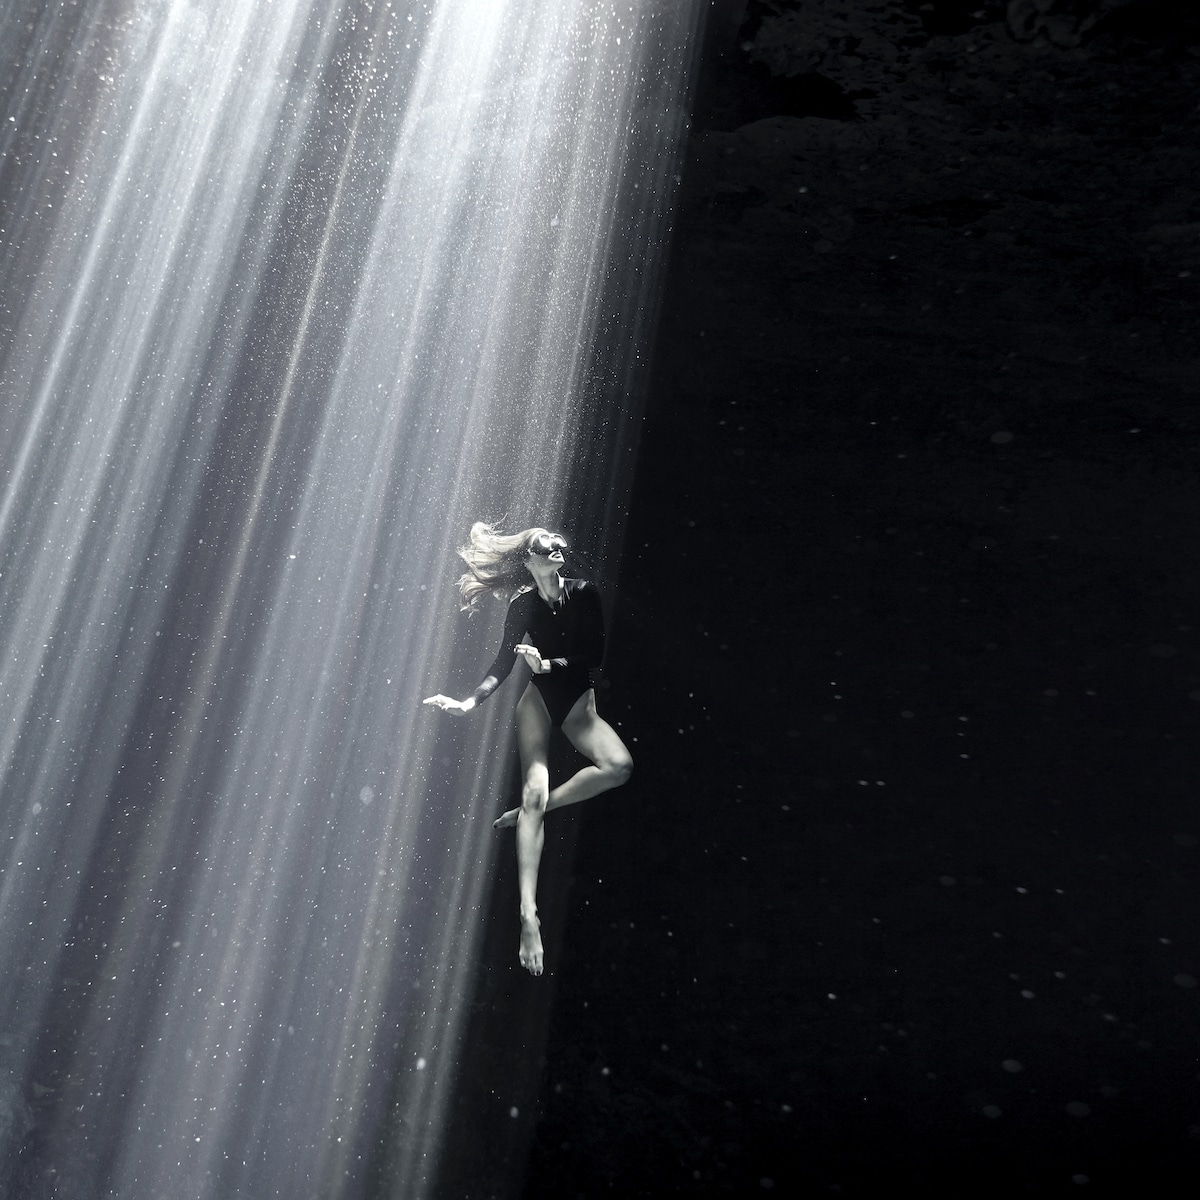 Woman Underwater With Rays of Sun Shining Down